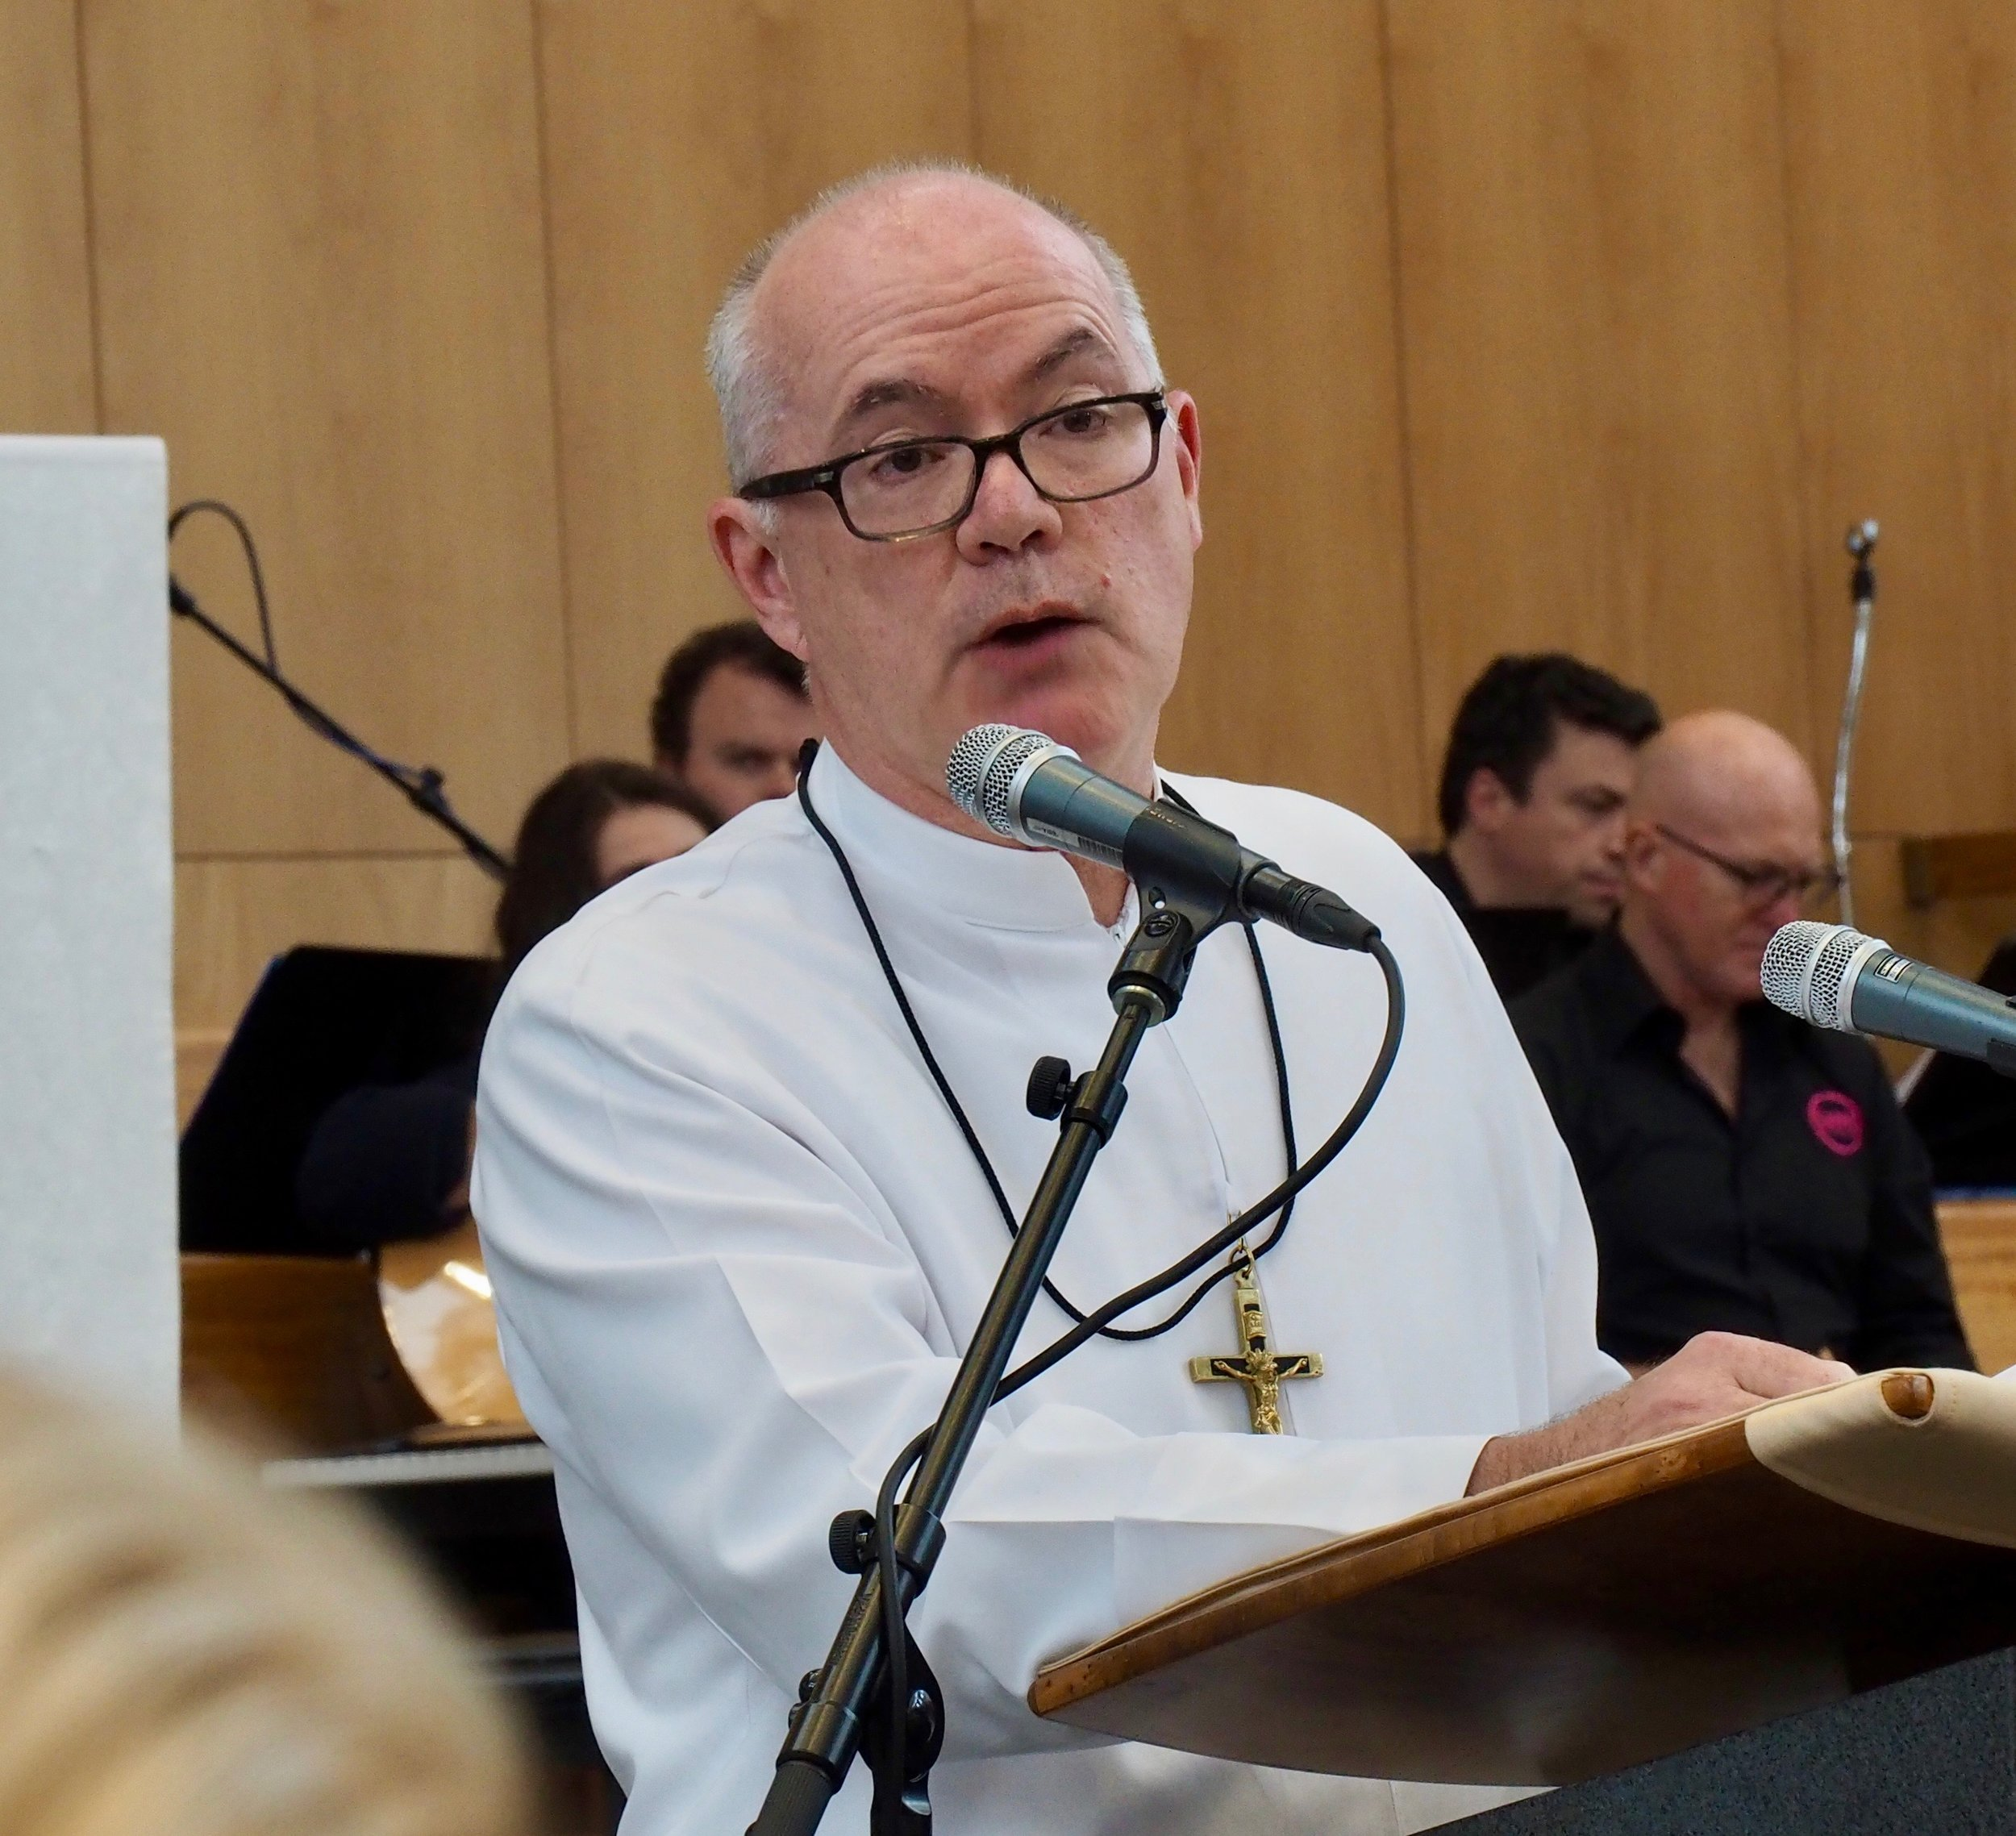 Bicentenary Mass Sydney 12 Aug 2017 Photos by Paul Harris 00090.jpg